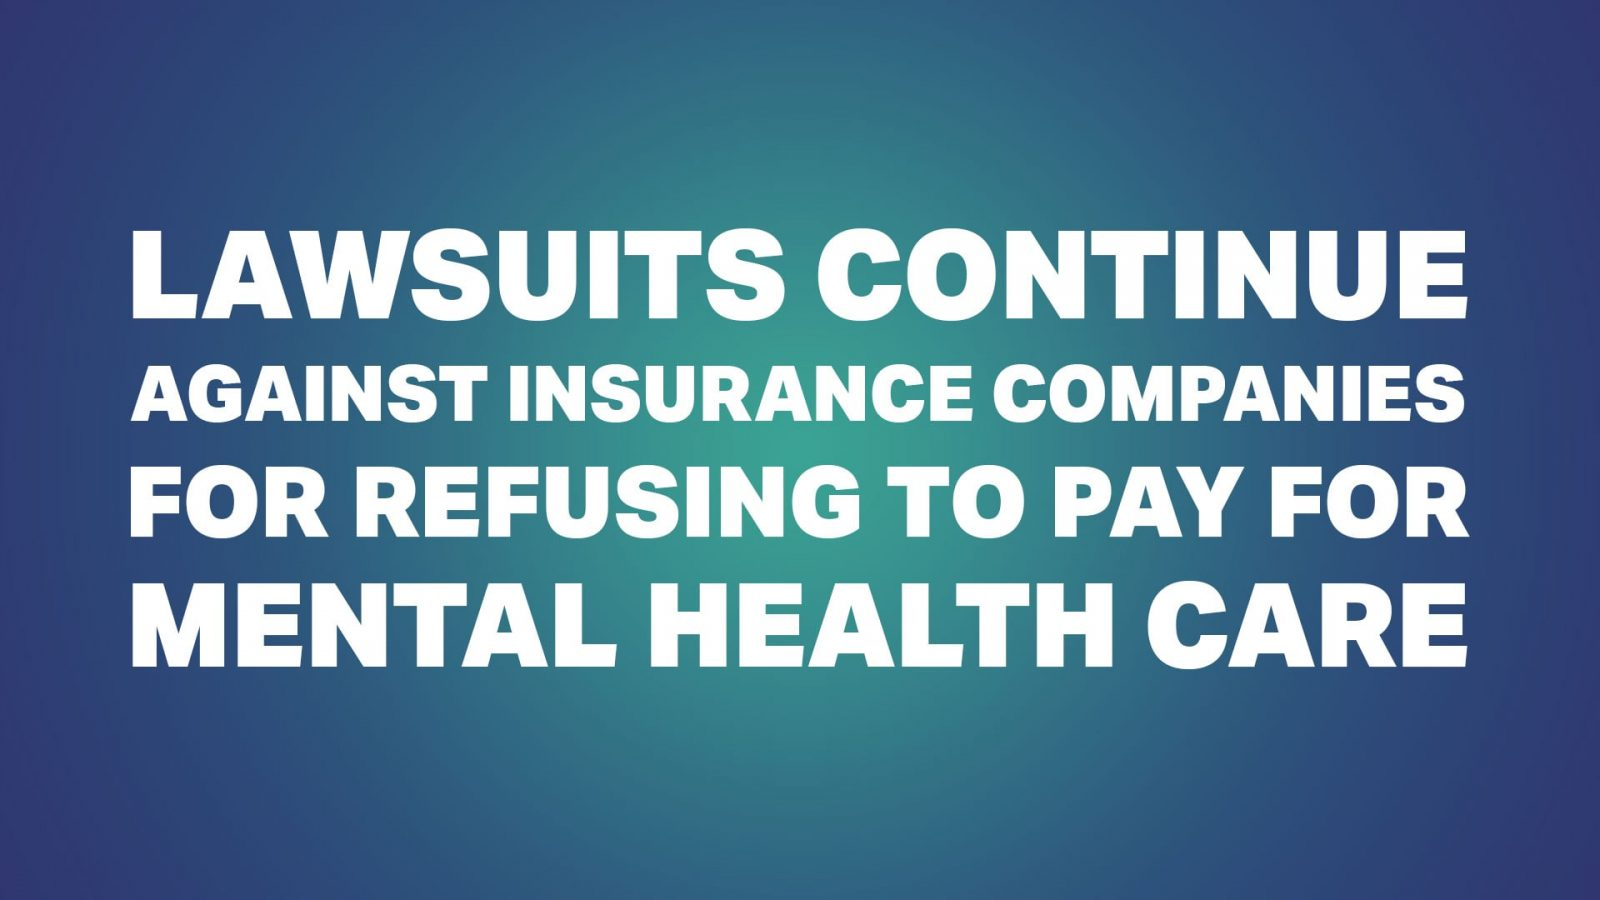 Lawsuits Continue Against Insurance Companies for Refusing to Pay for Mental Health Care